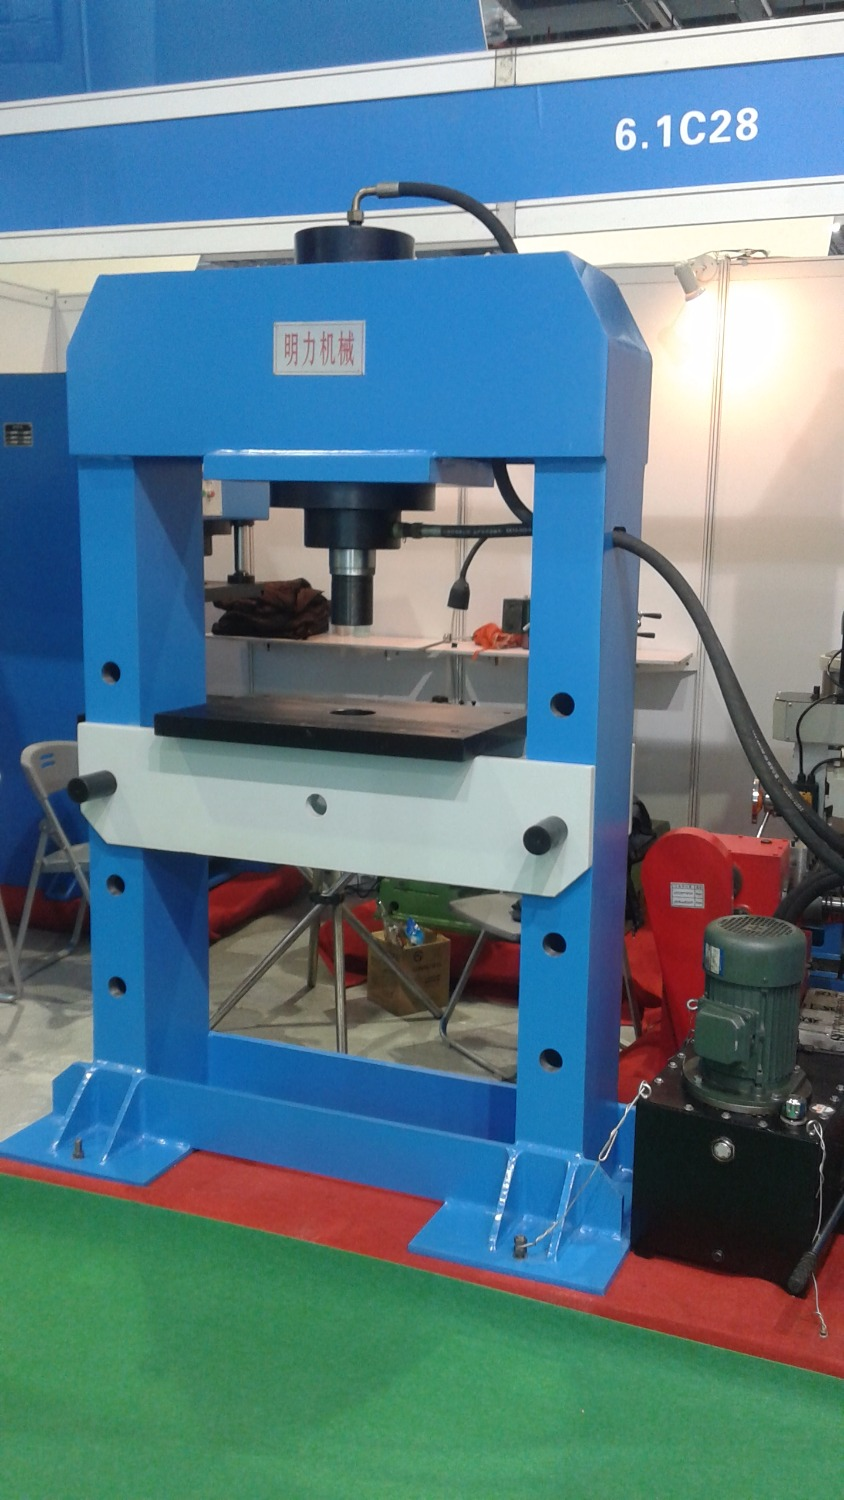 YJL 150 electric hydraulic press machine shop machinery tools